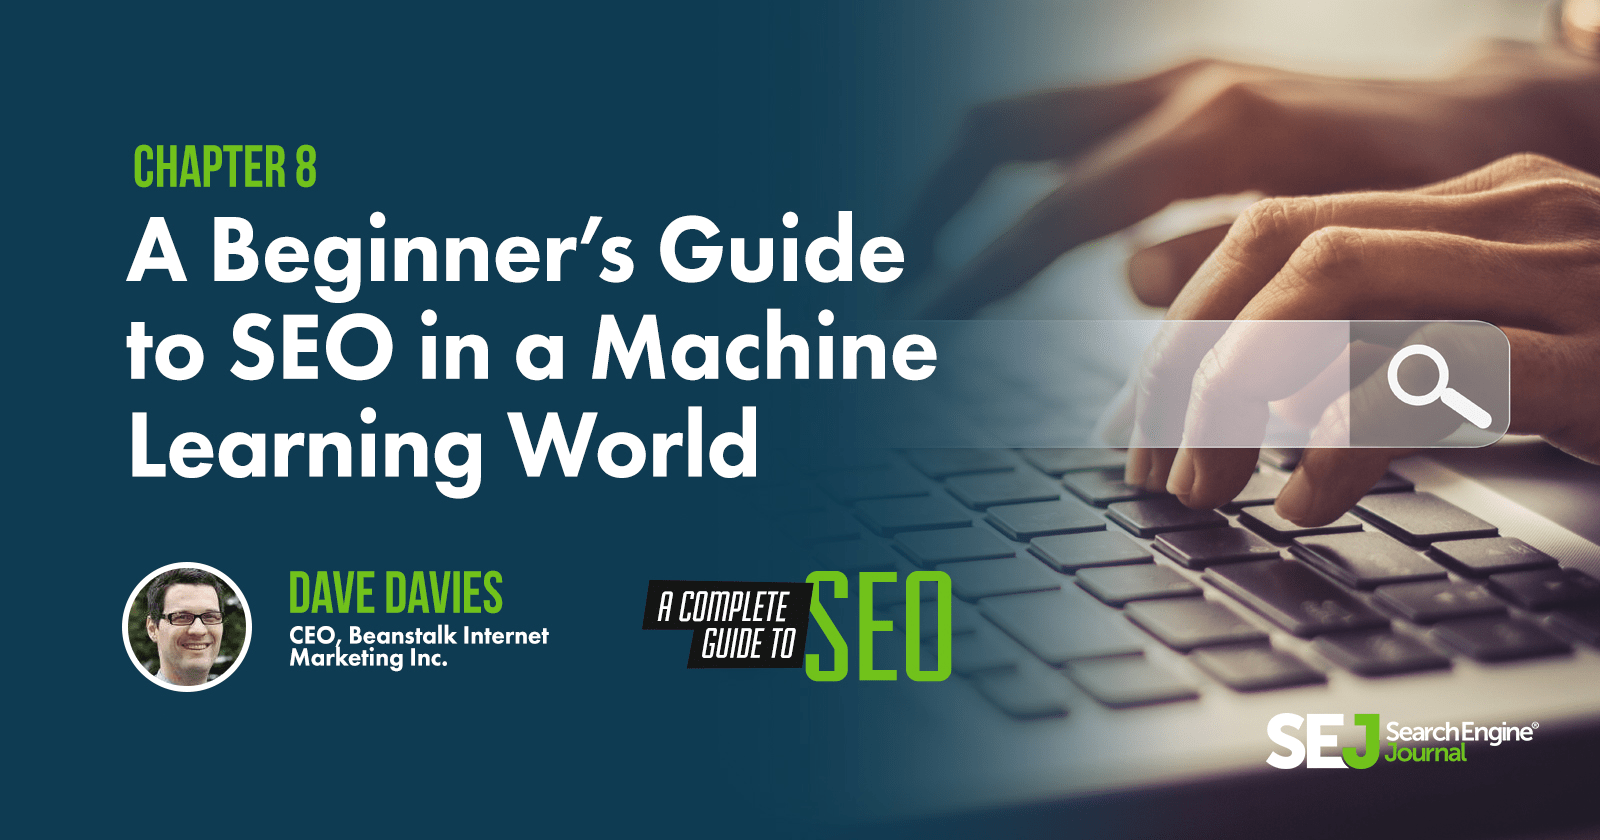 A Beginner's Guide to SEO in a Machine Learning World